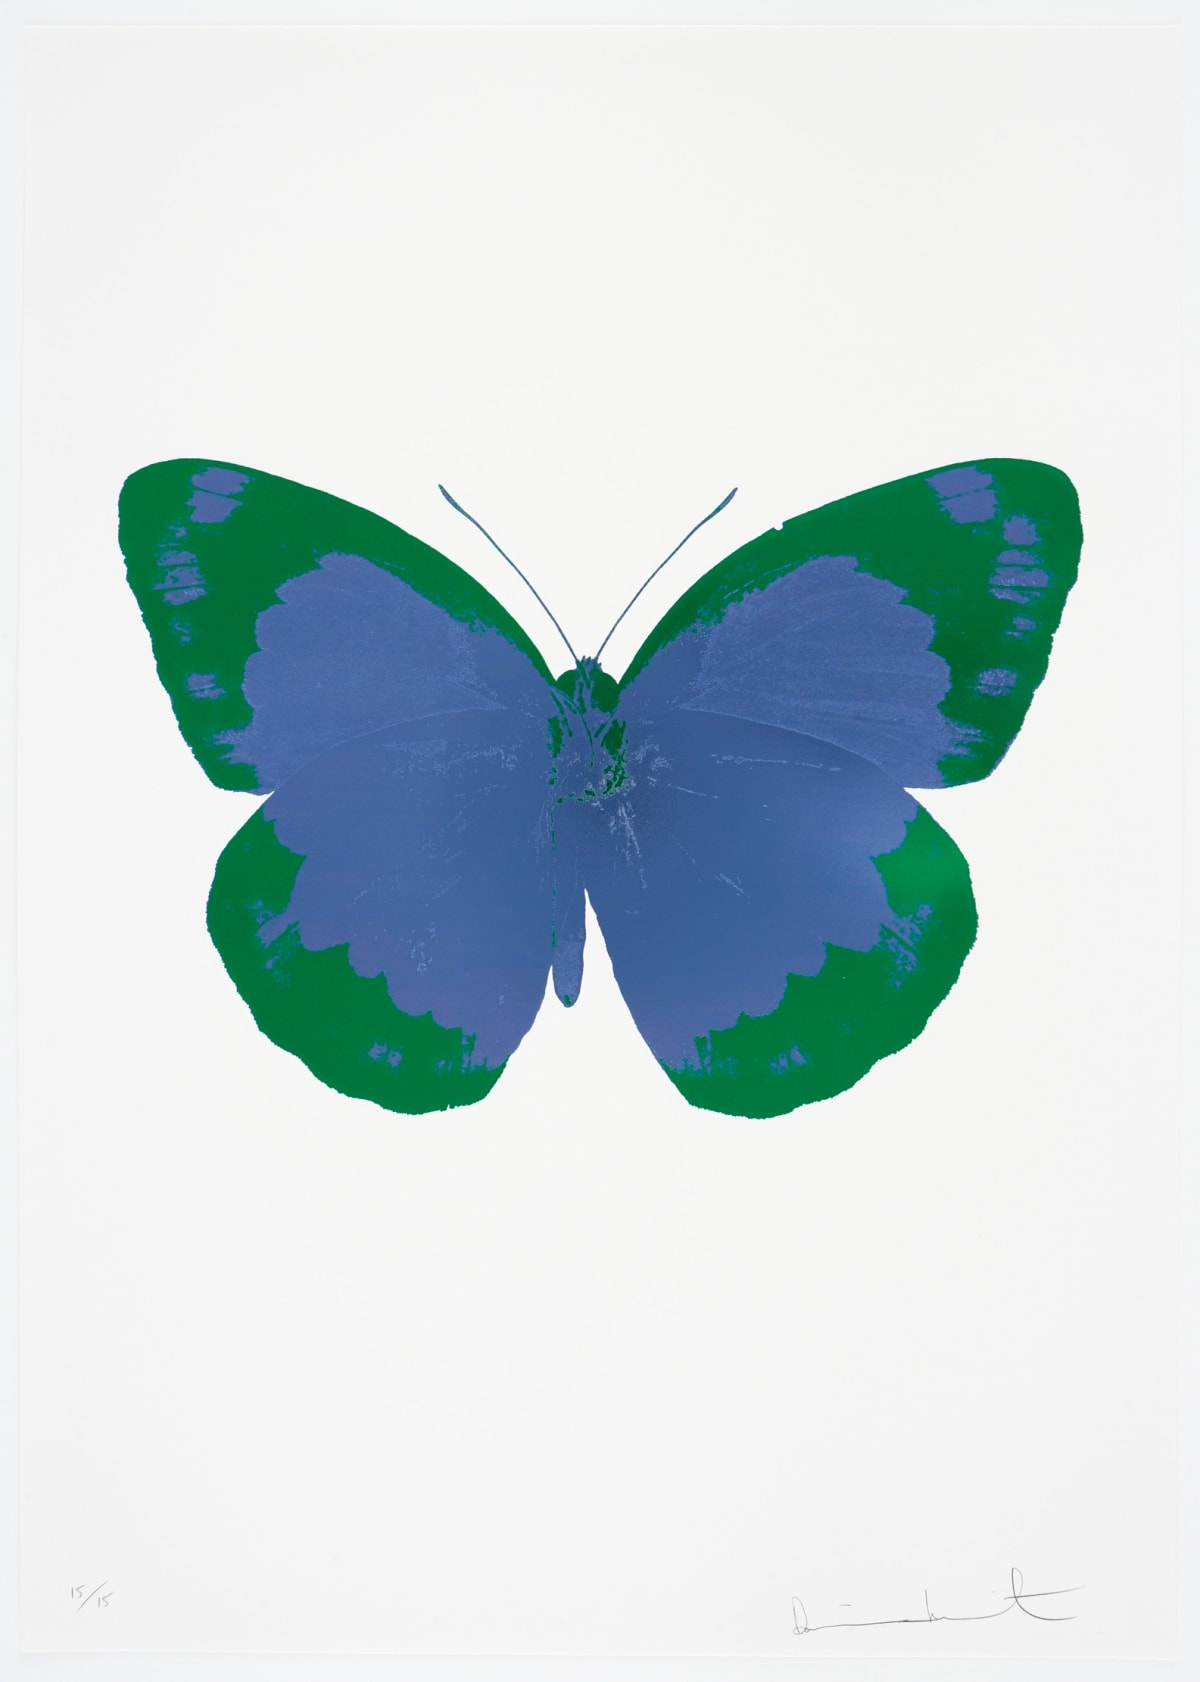 Damien Hirst The Souls II - Frost Blue/Emerald Green/Blind Impression, 2010 2 colour foil block on 300gsm Arches 88 archival paper. Signed and numbered. Published by Paul Stolper and Other Criteria 72 x 51cm OC7844 / 658-27 Edition of 15